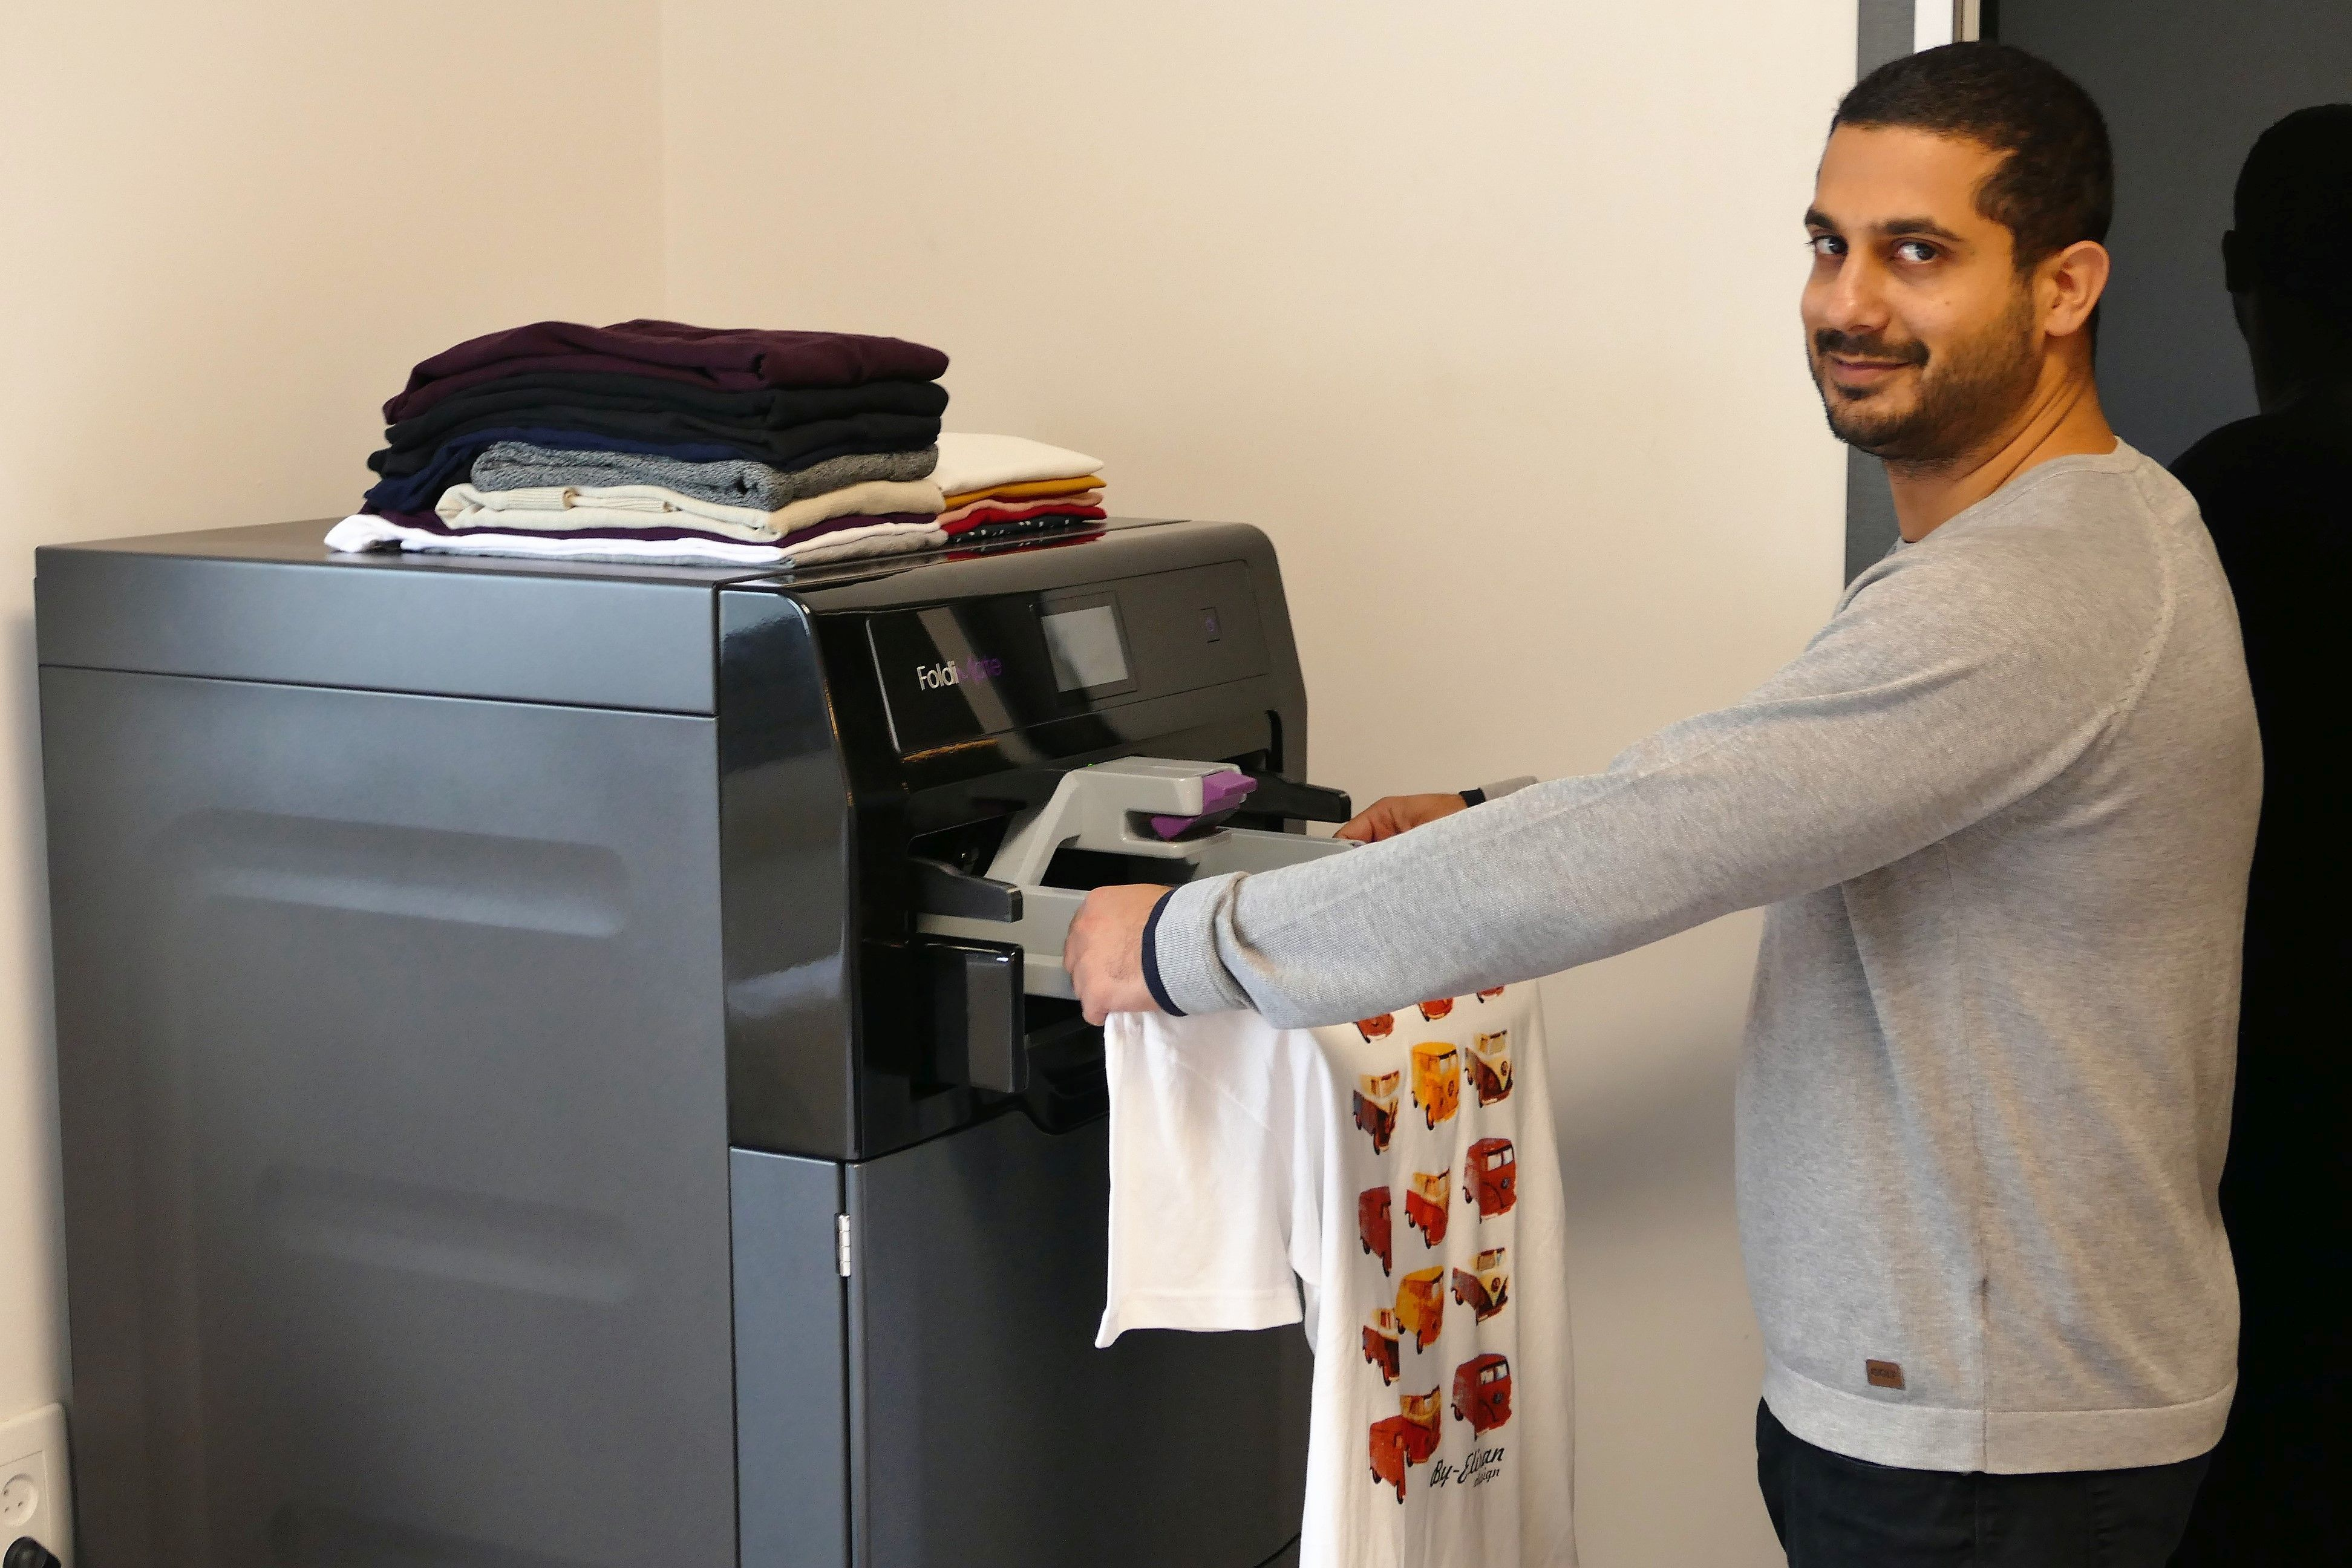 Machine That Folds Laundry Debuts At Consumer Electronics Show And